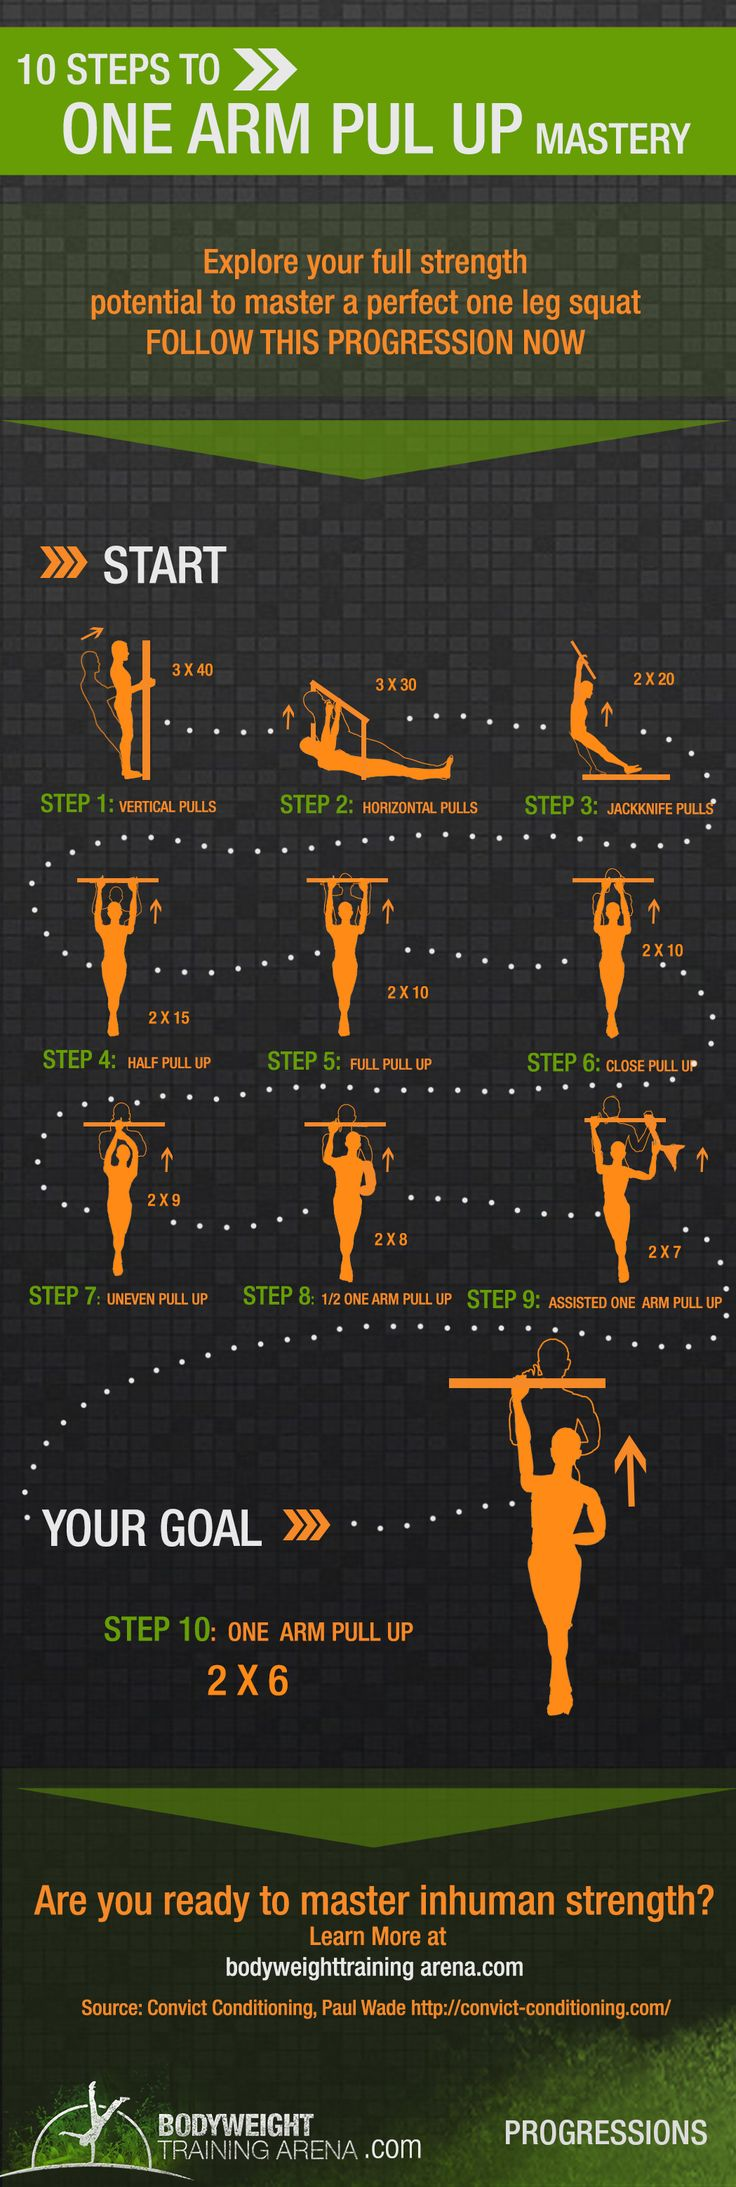 Convict Conditioning One Arm Pull Up Progression #motivation #fitness #lifestyle http://papasteves.com/